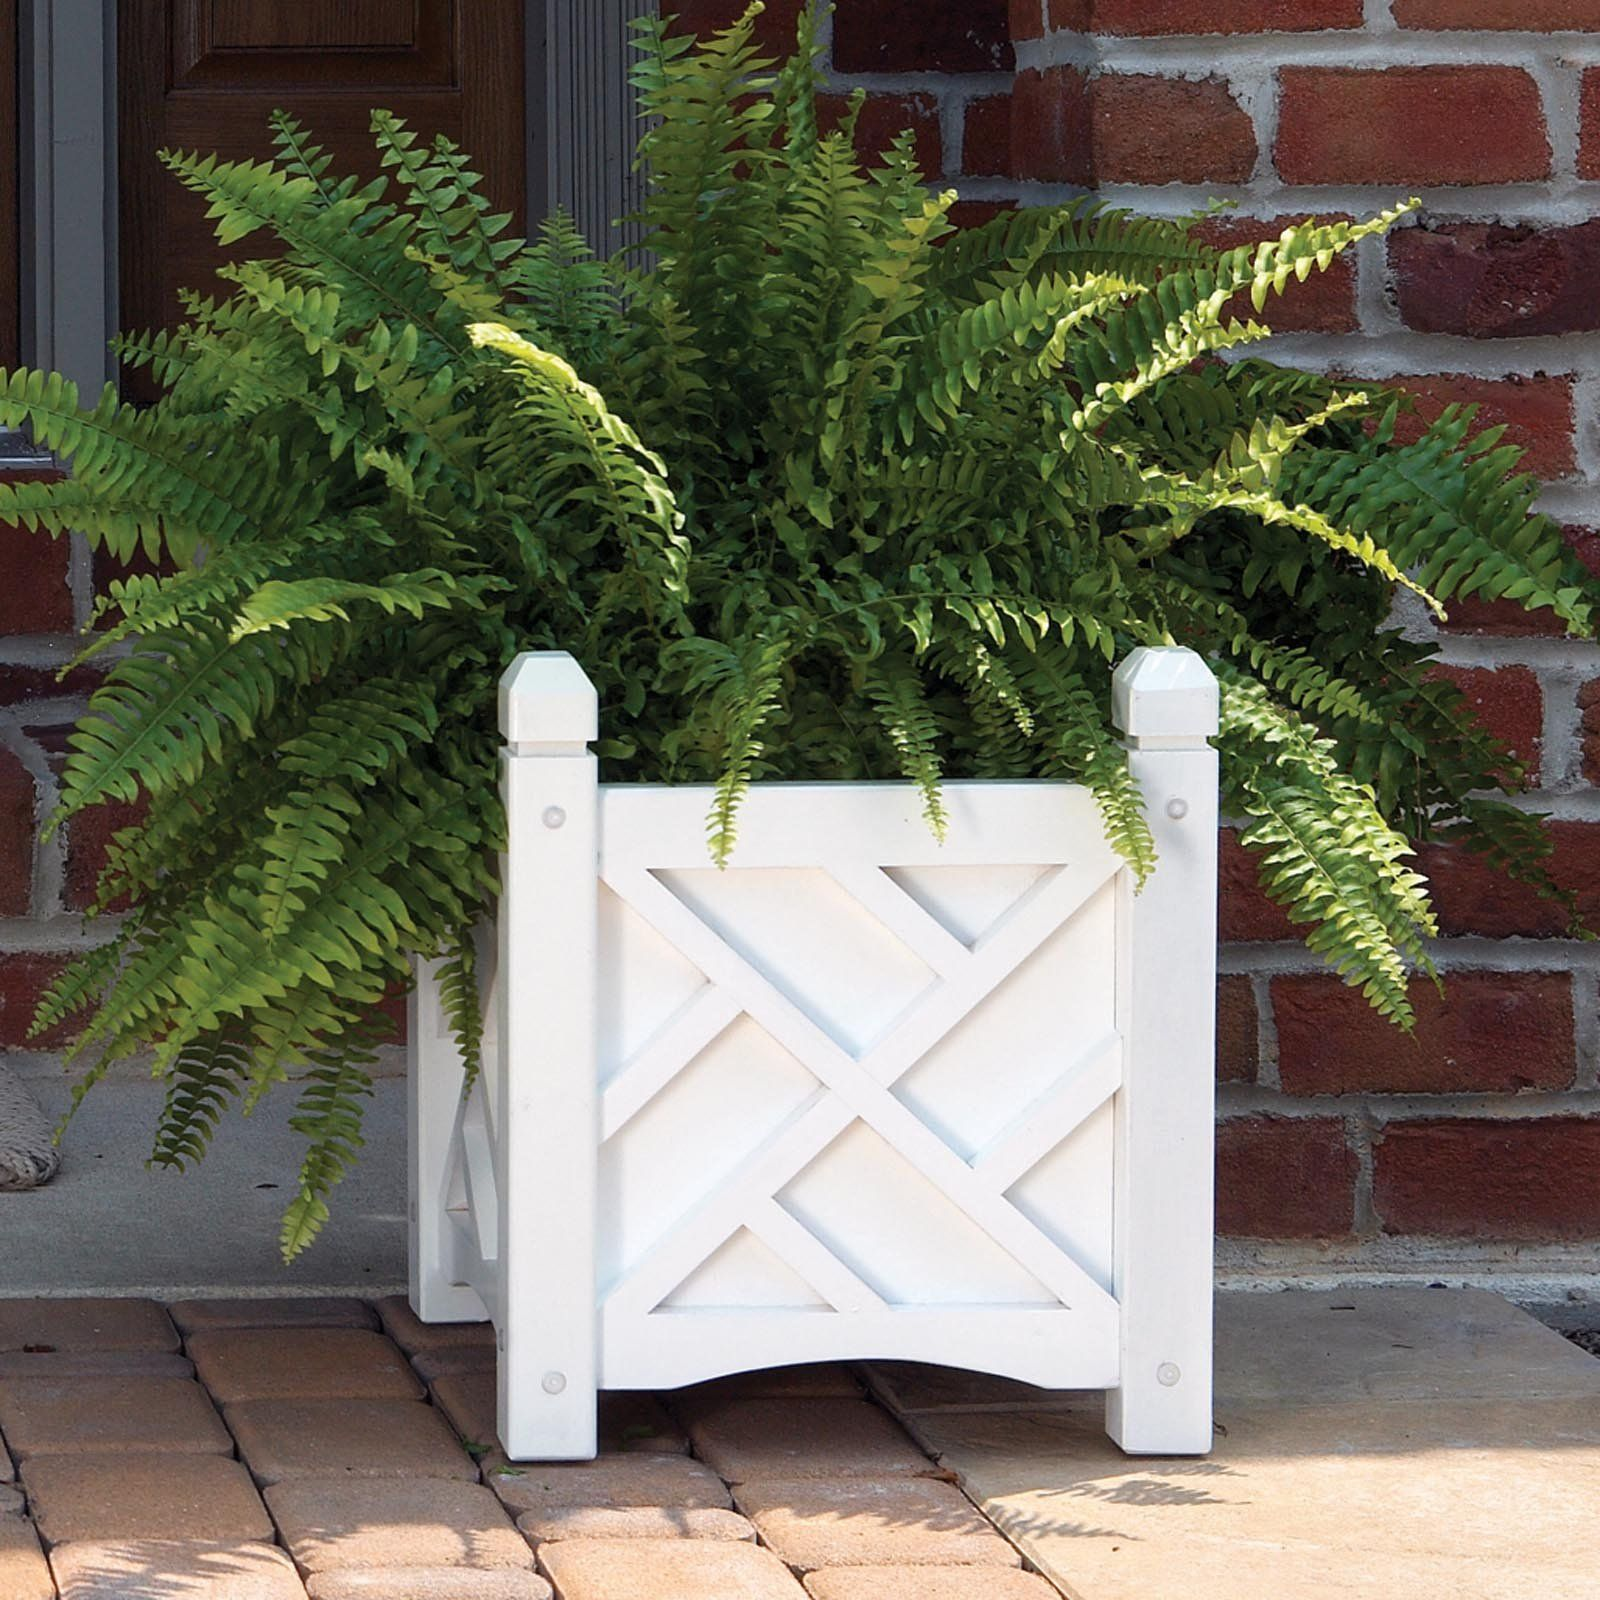 Solid Wood Chippendale Planter Box $56.99